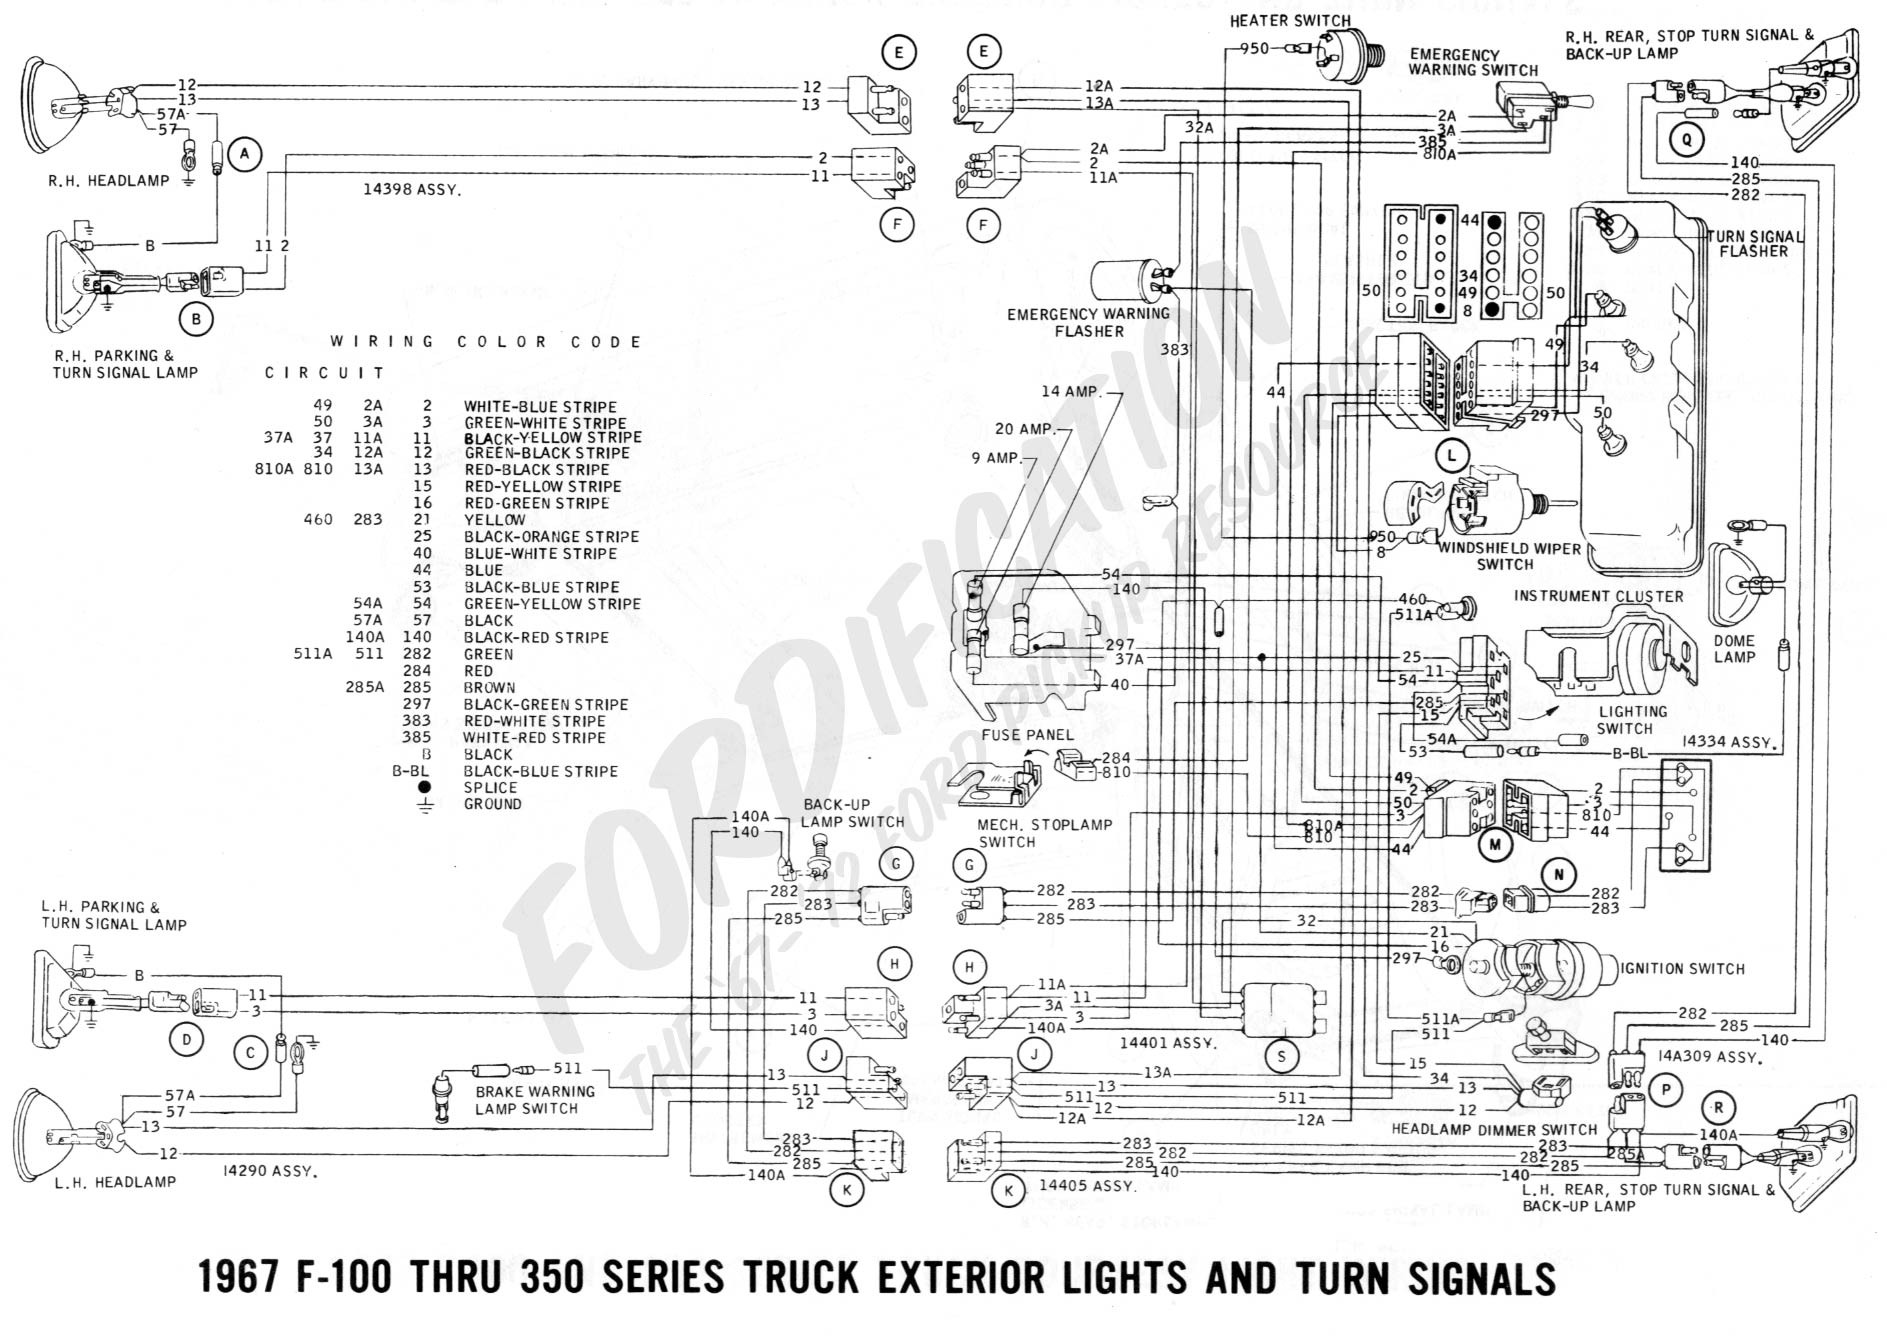 1971 Ford Pickup Wiring Diagram Get Free Image About Wire 1956 Clutch Electrical Diagrams Rh Cytrus Co